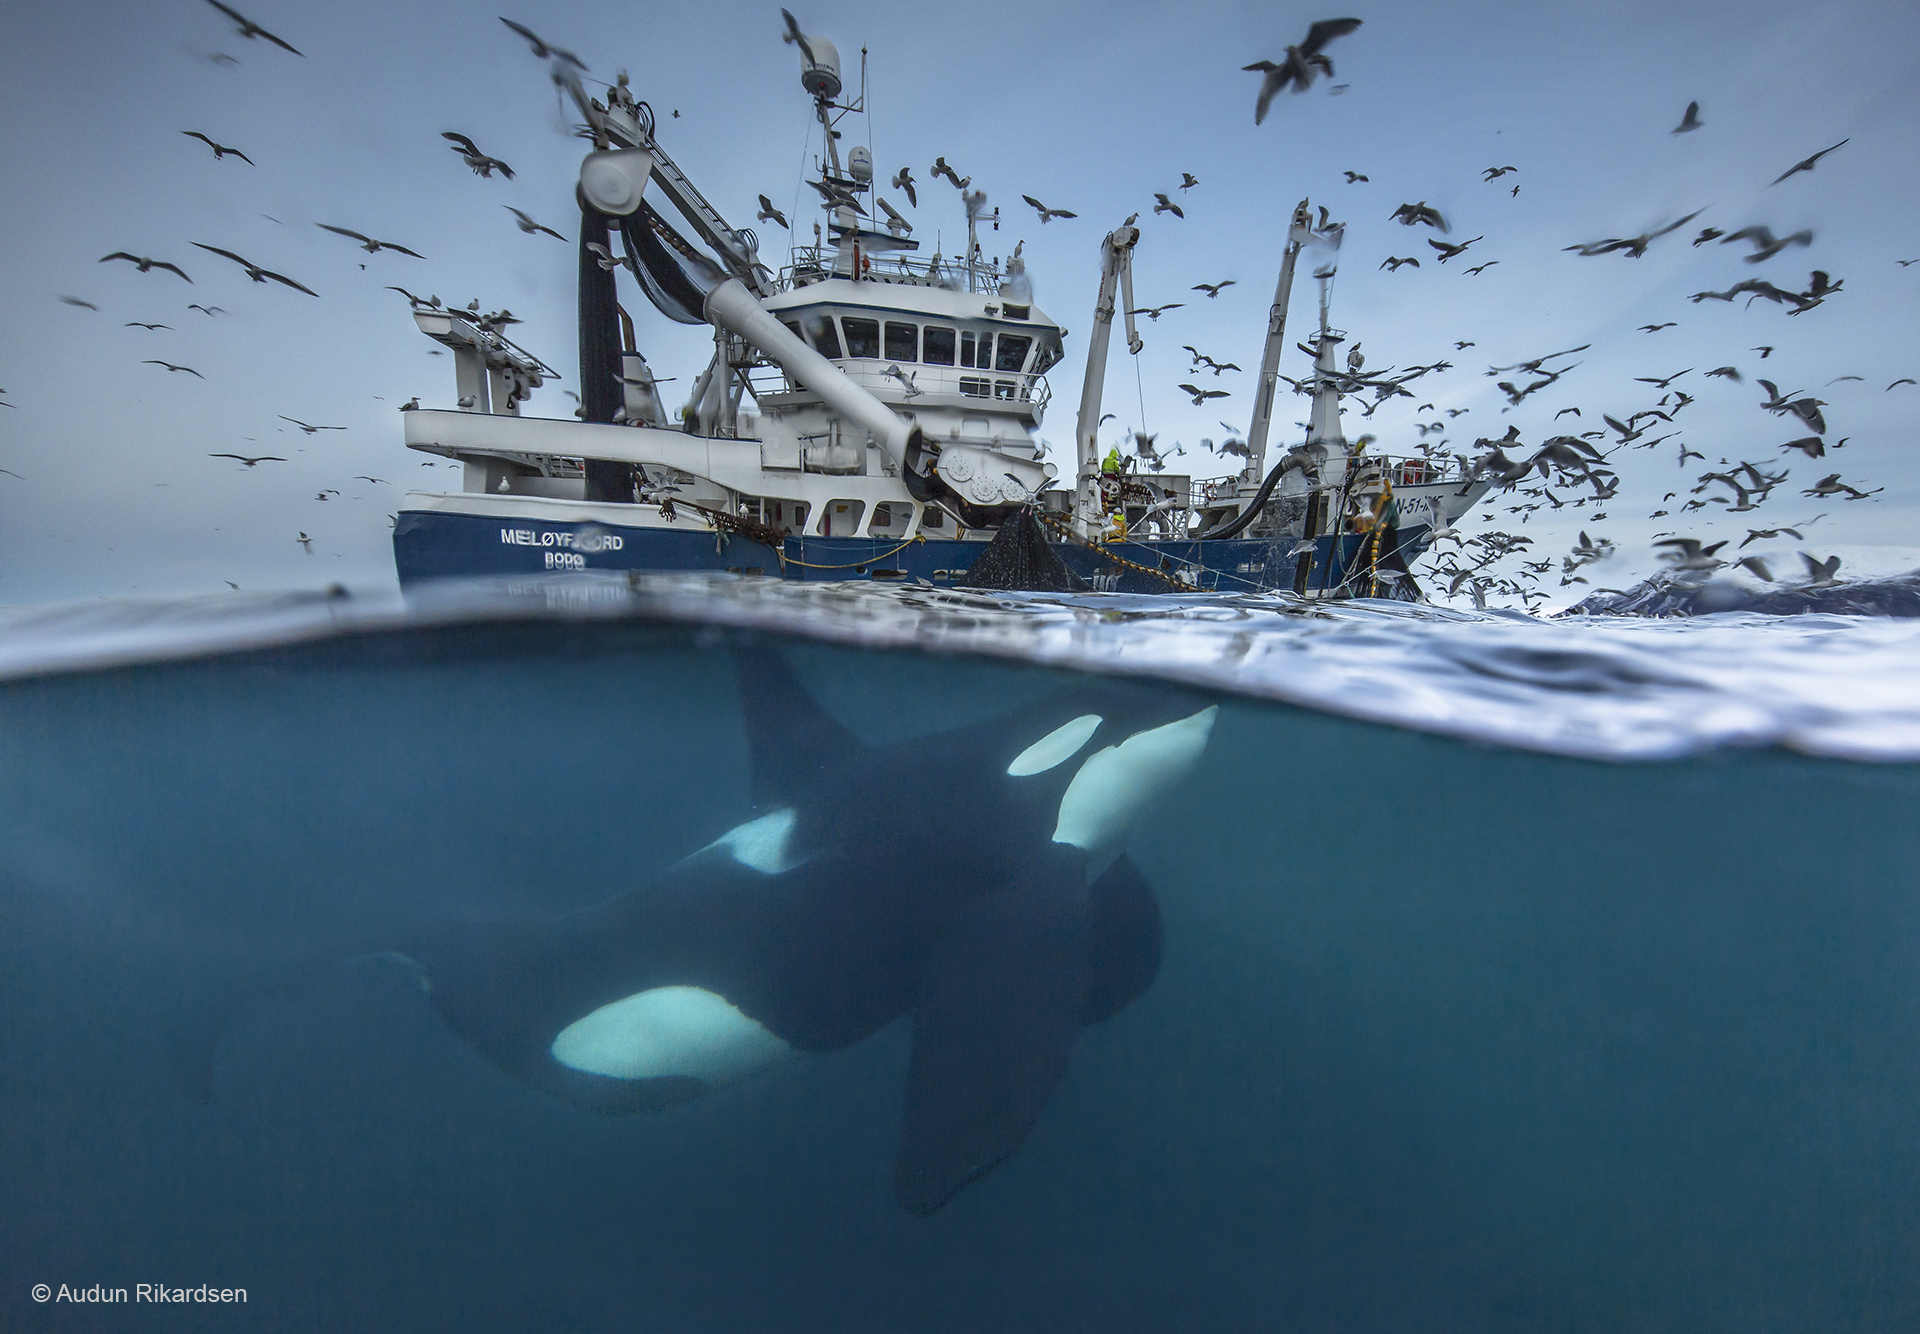 A killer whale swims up to a fishing boat to get a bite of herrings.